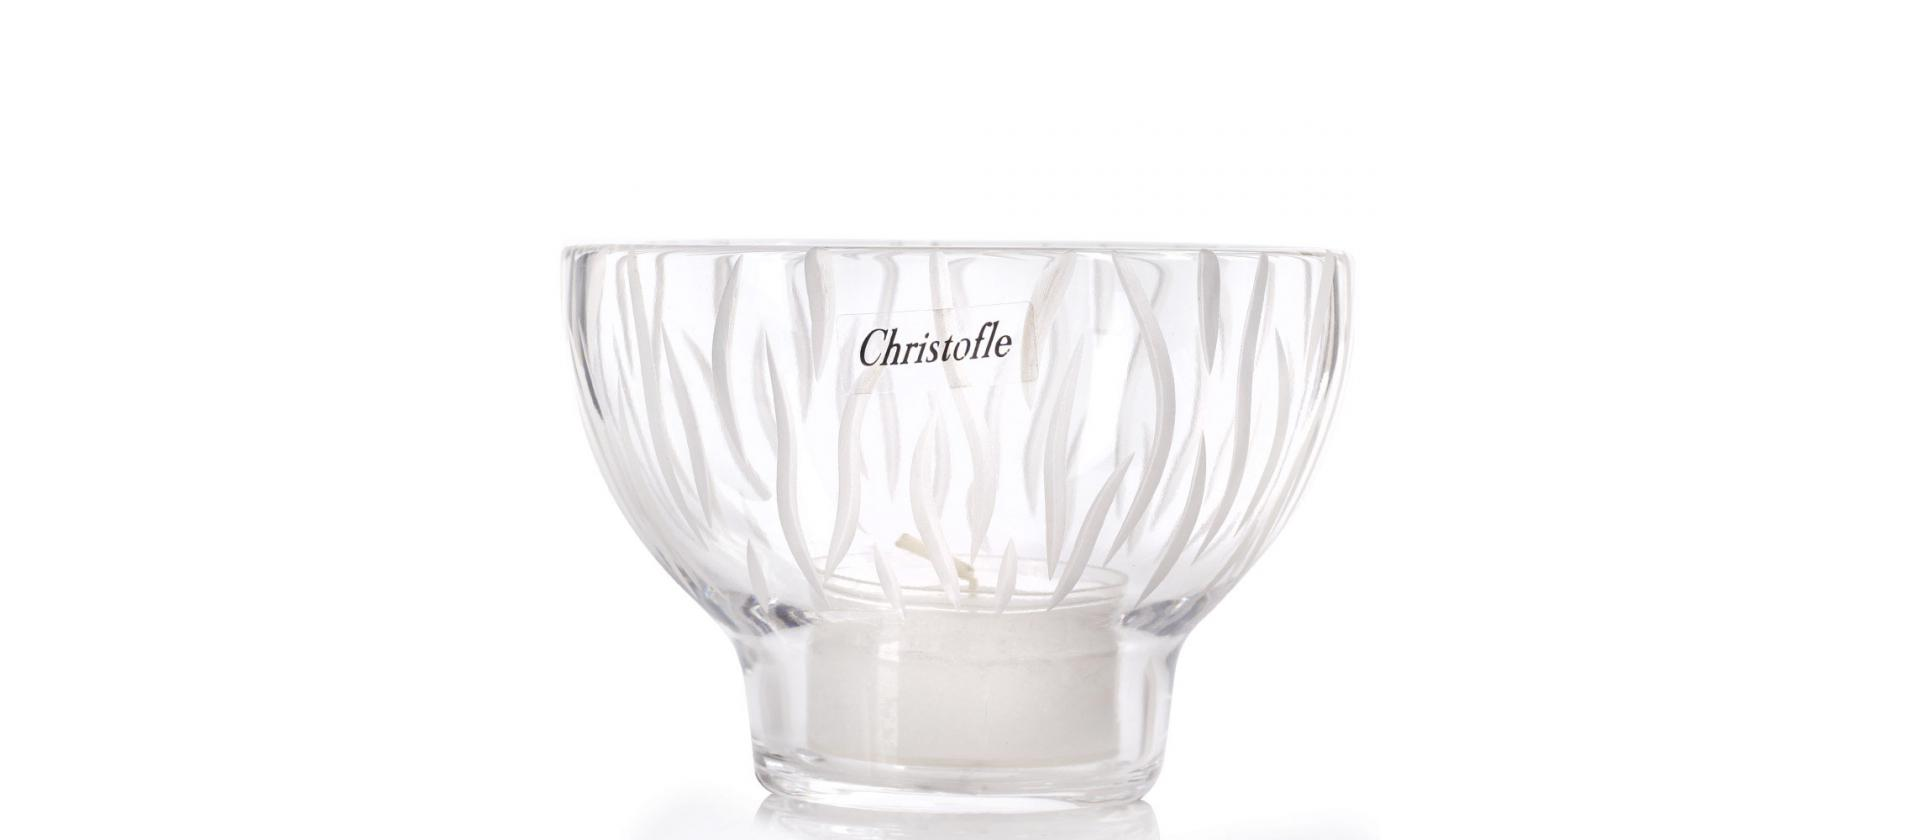 Candlestick Christofle Savane big